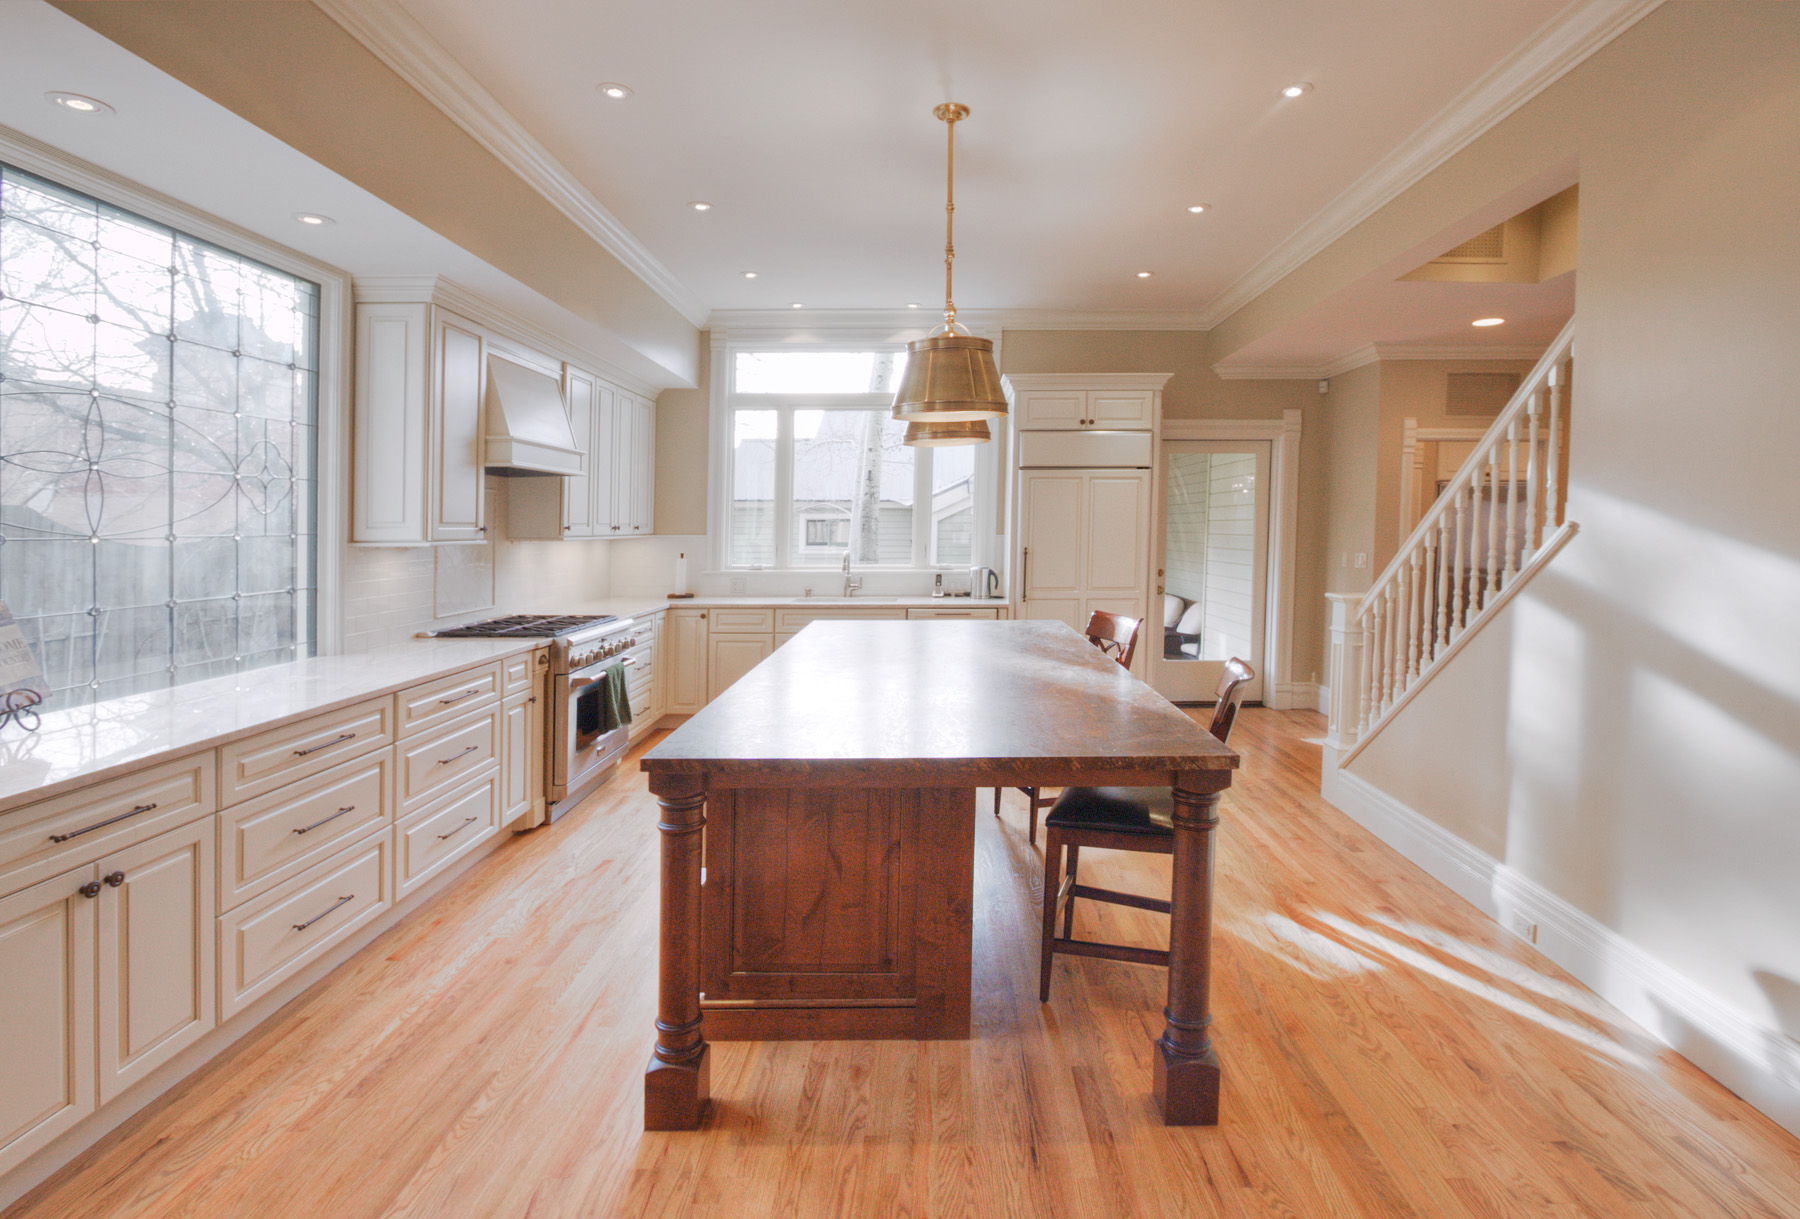 Open floor plan tan kitchen with large wood island